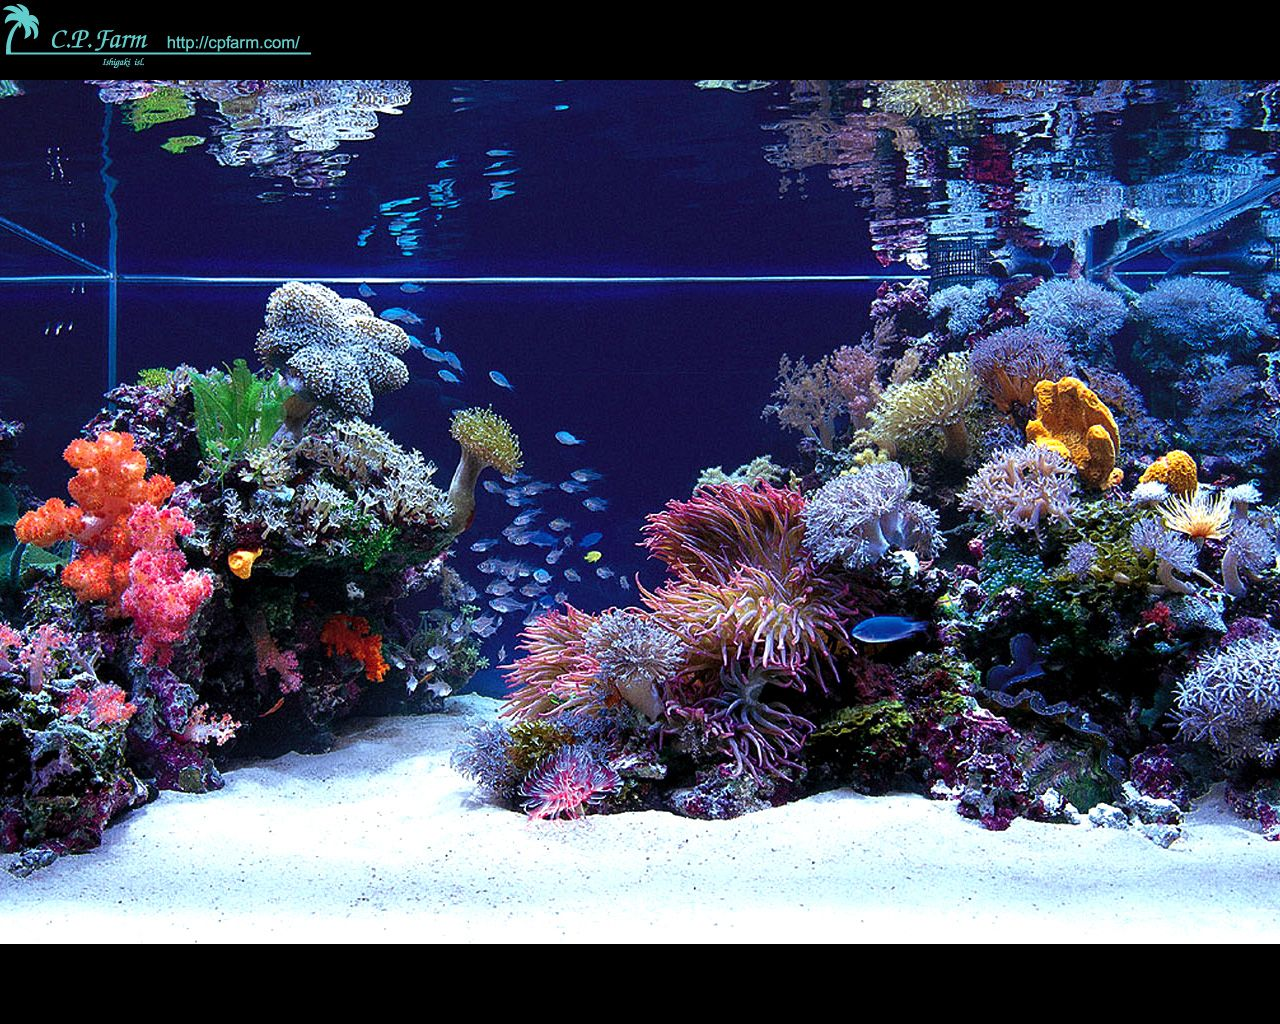 Fish tank japan - Stunning Japanese Aquariums From Cp Farm Aquarium Design Ideas Aquarium Design On Thursday